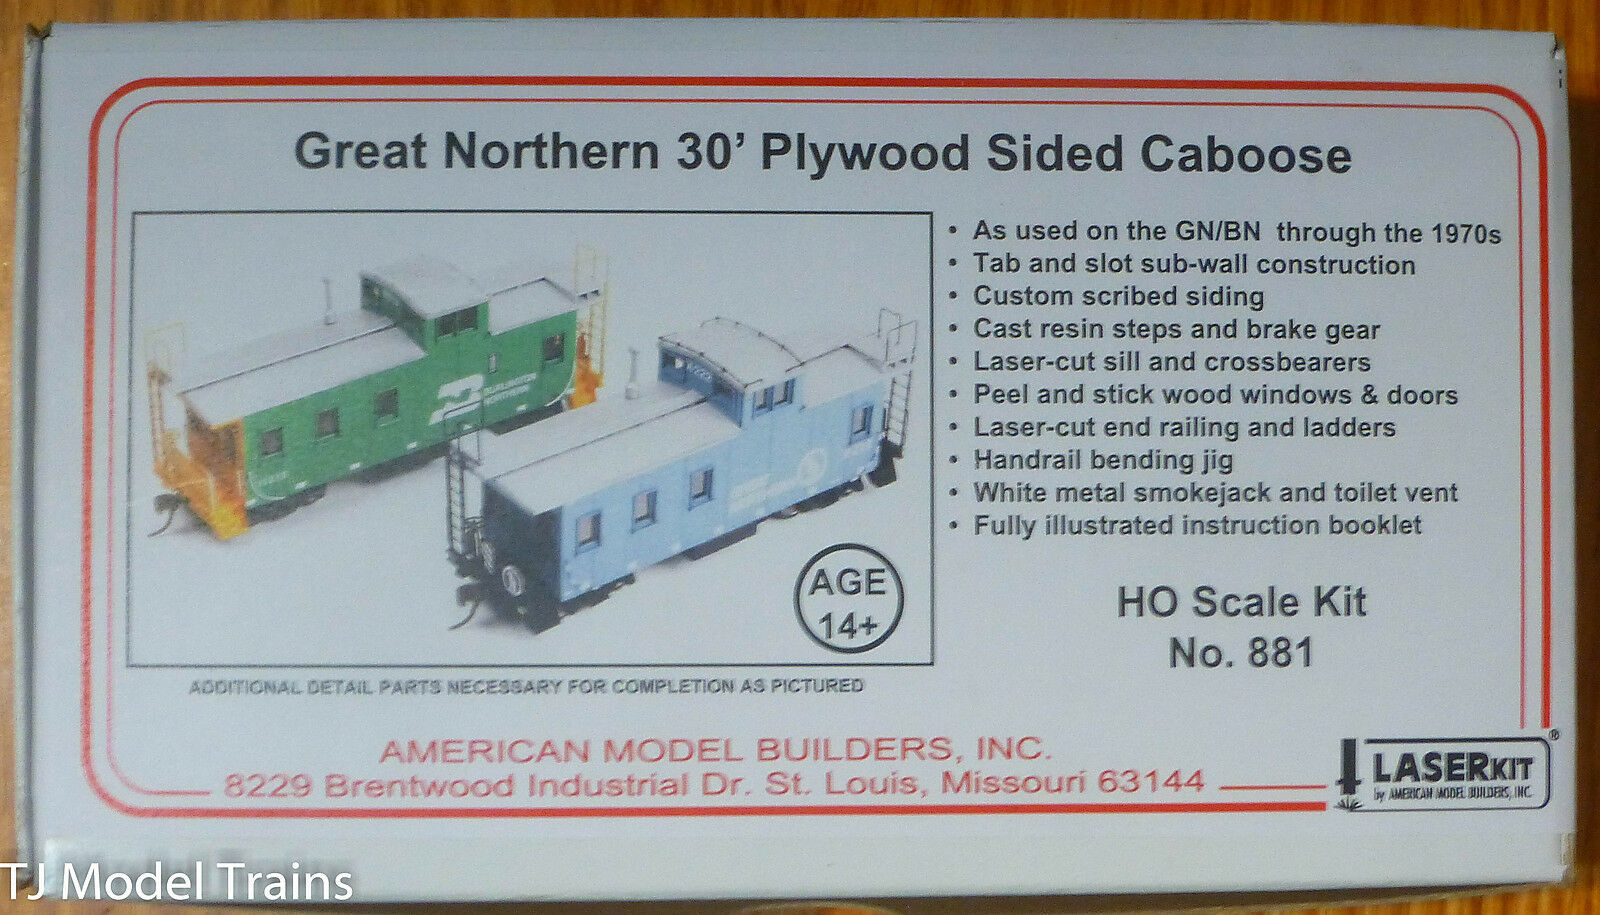 American Model Builders (NEW KIT) 30' Plywood Sided Caboose Kit GN